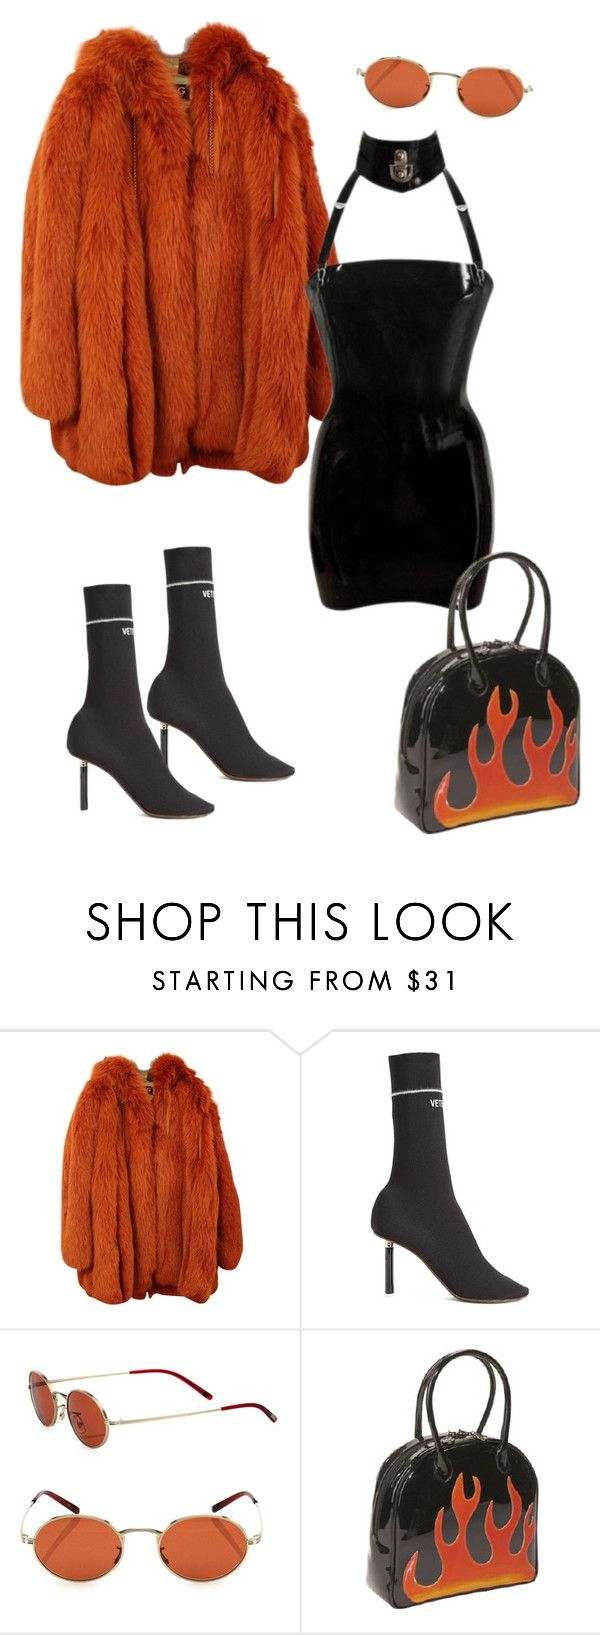 """fire 🔥"" by briannamazzola ❤ liked on Polyvore featuring Dolce&Gabbana, Vetements, Oliver Peoples and Bisadora"